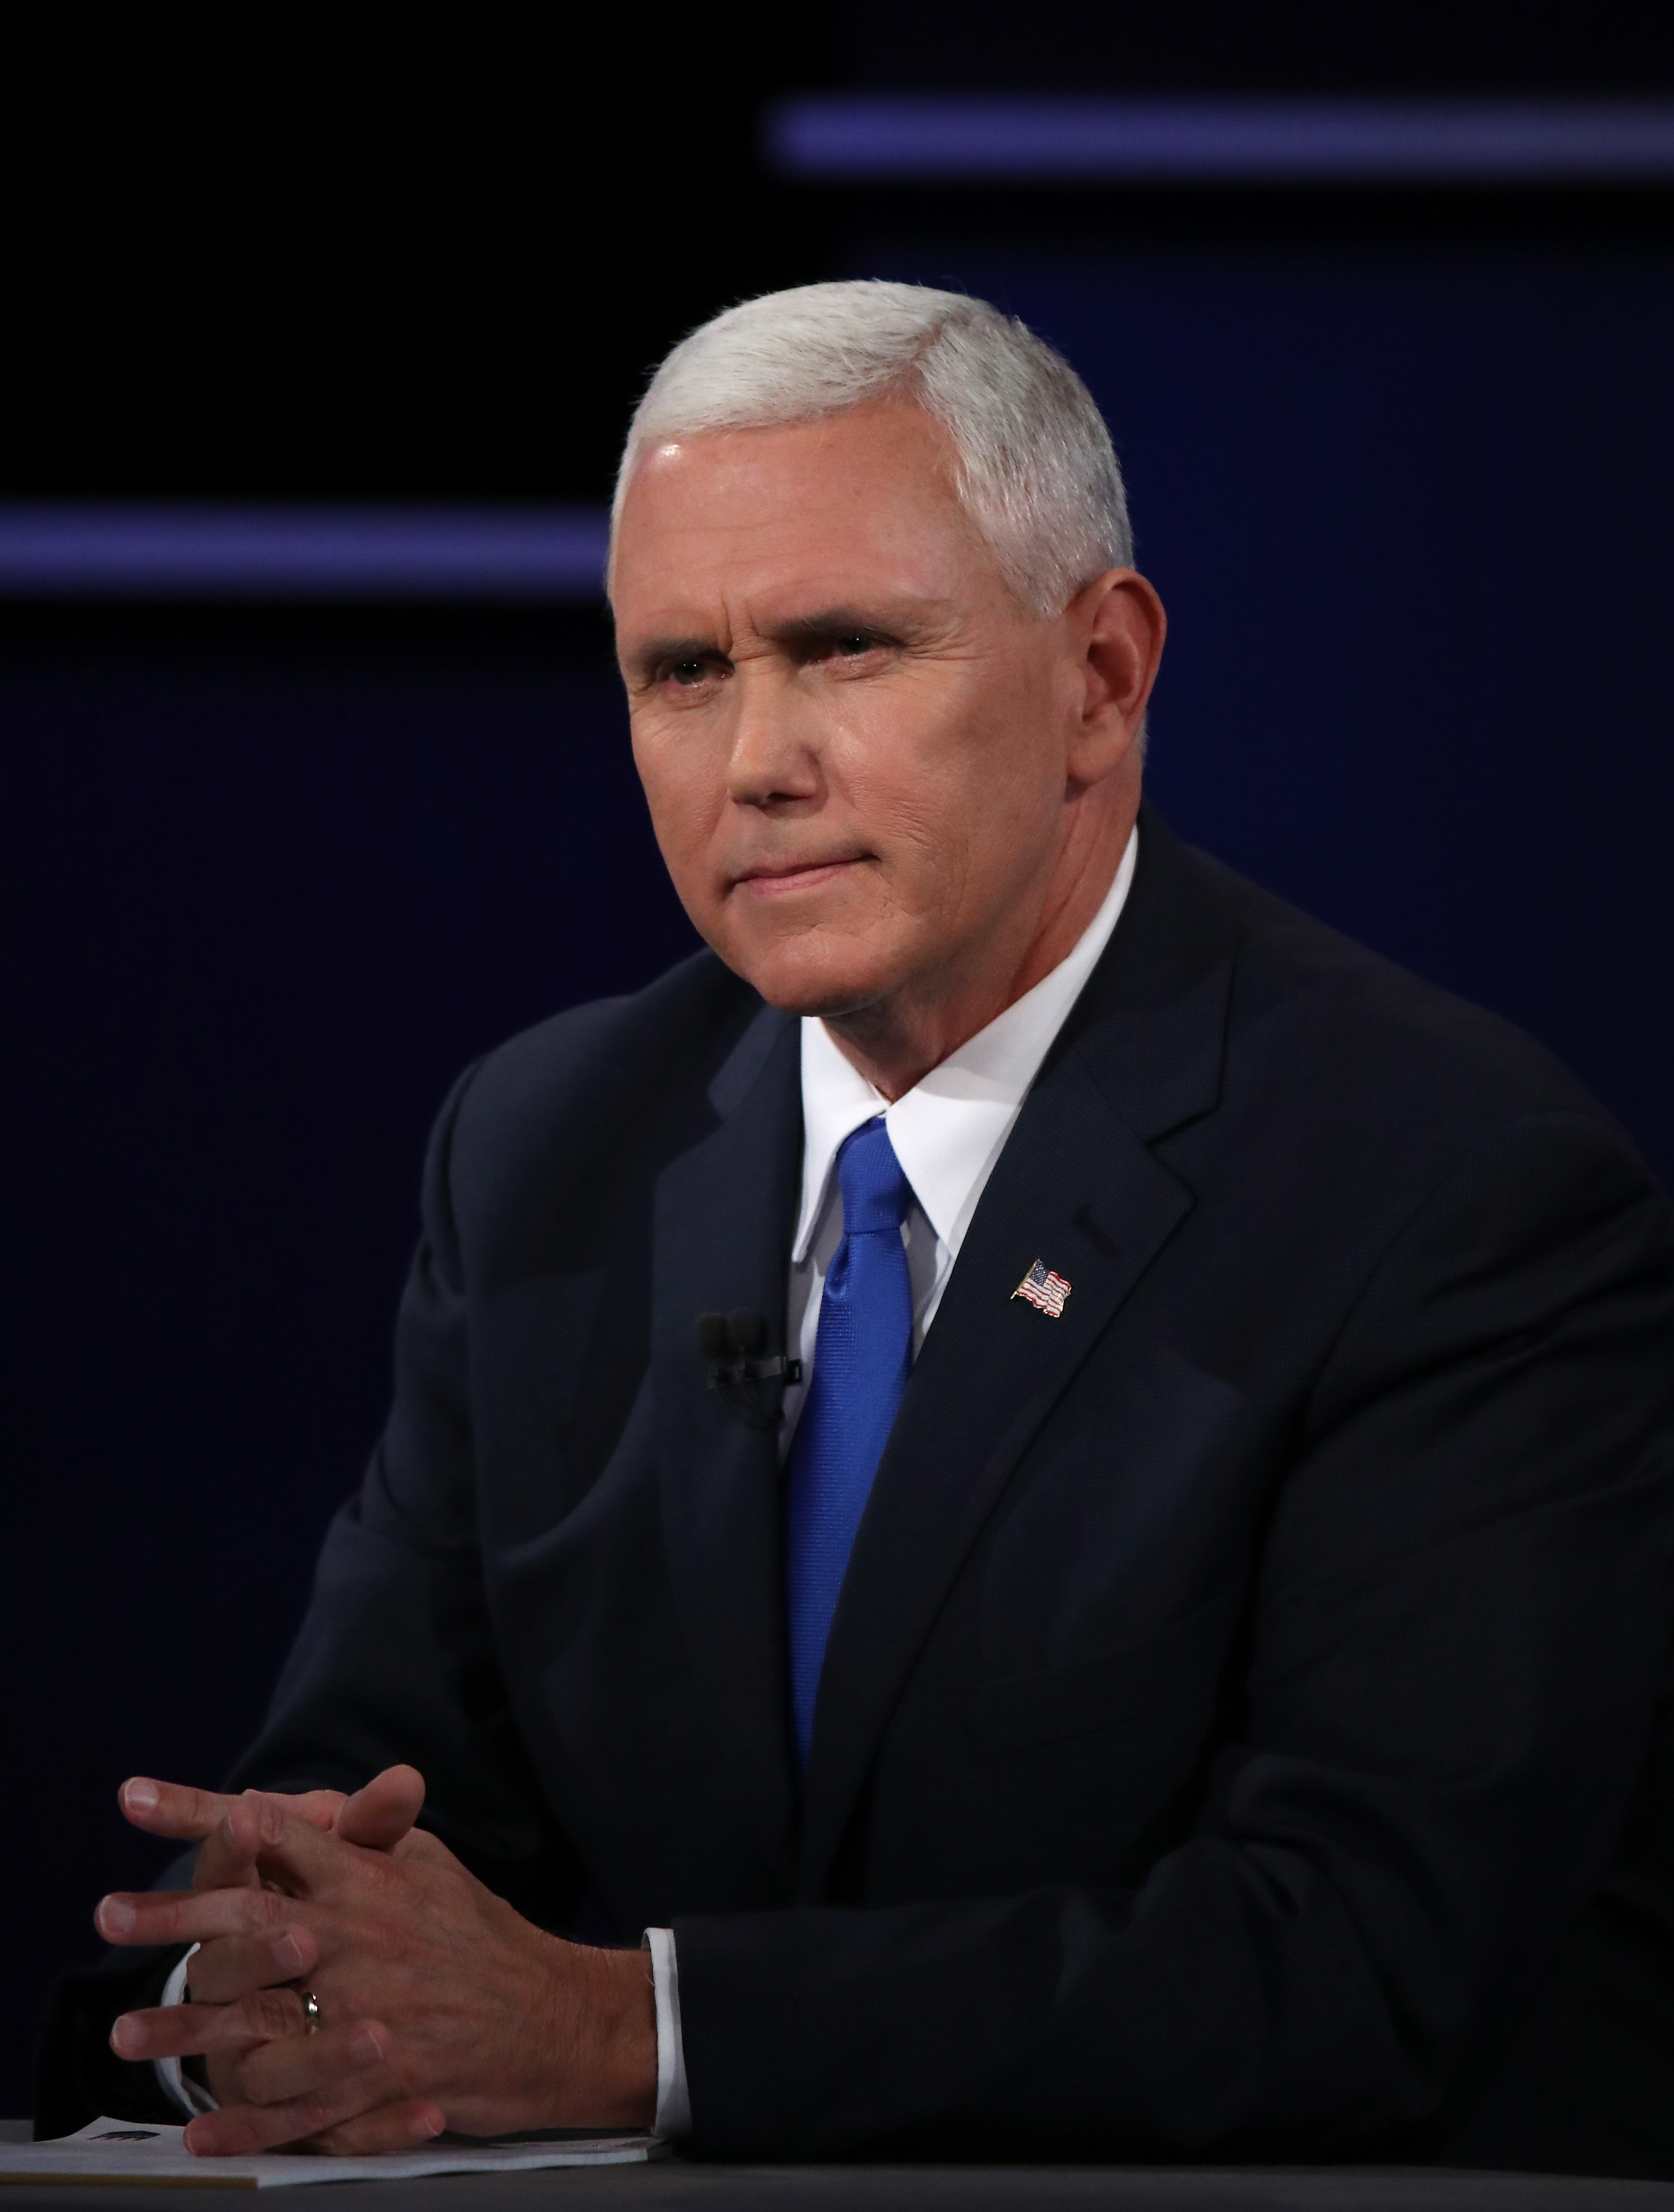 Republican vice presidential candidate Mike Pence at the debate.